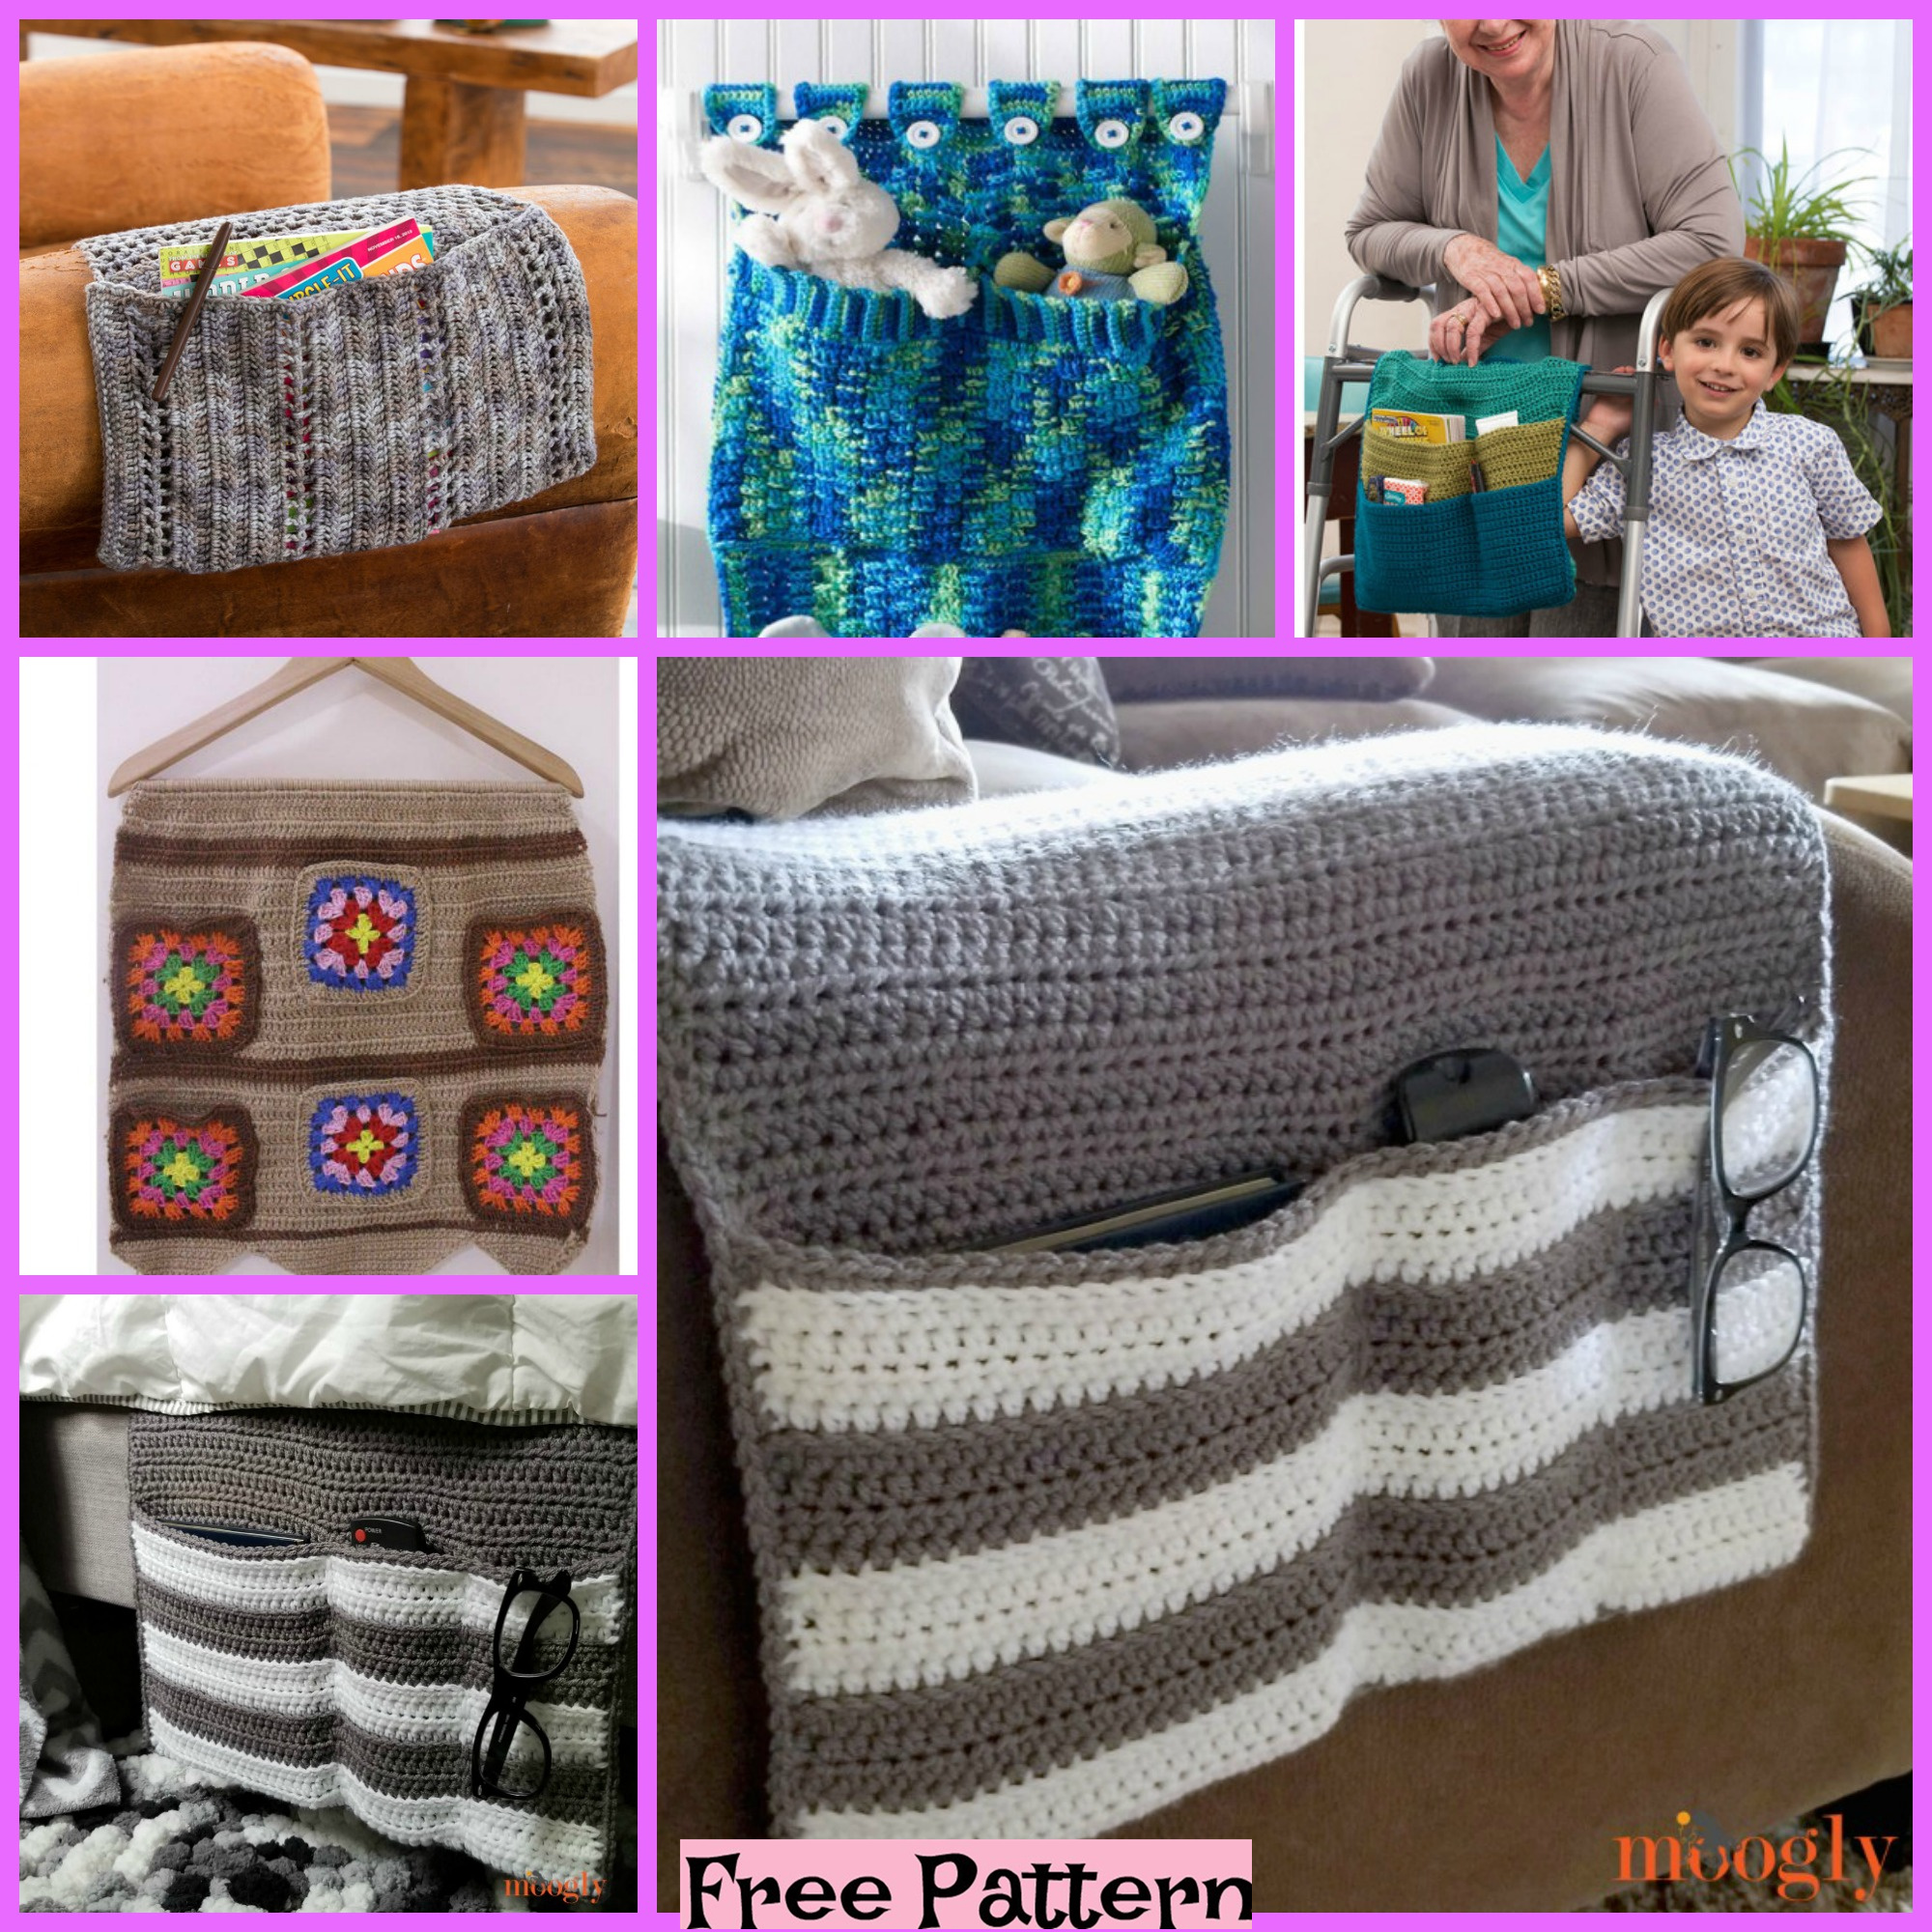 diy4ever- Crochet Home Organizers - Free Patterns